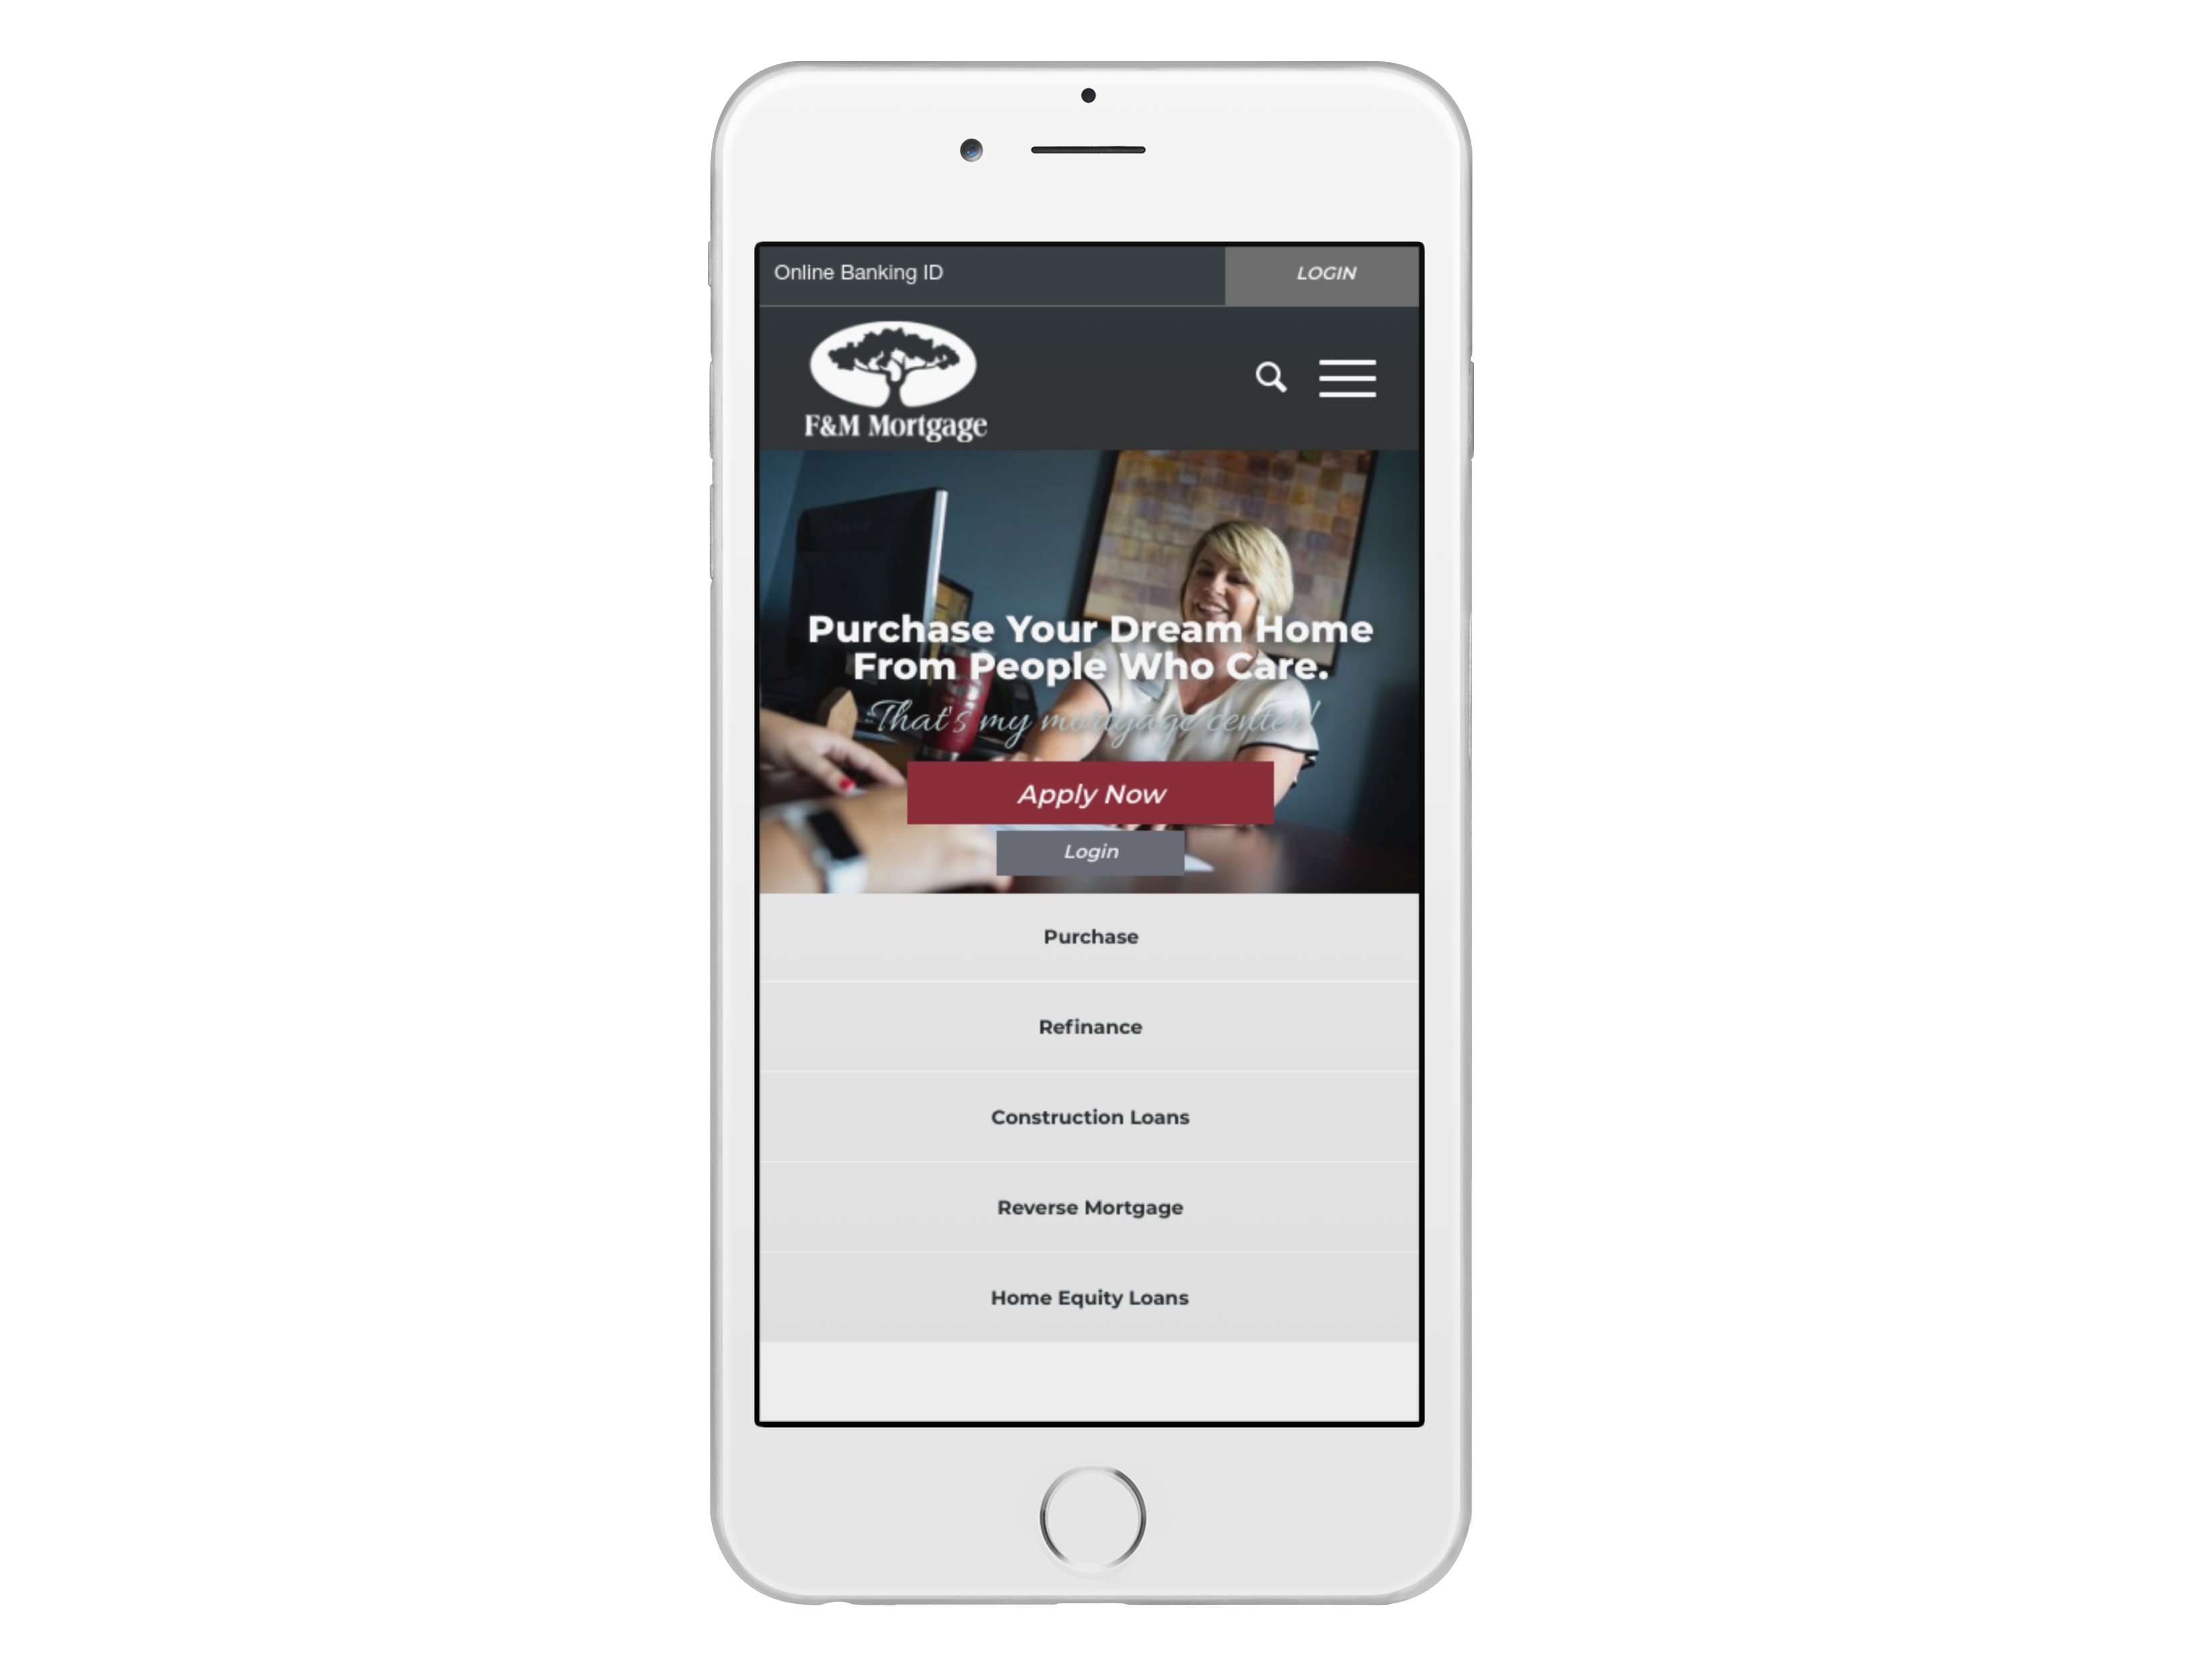 F&M's website is mobile friendly and accessible from anywhere in the world.